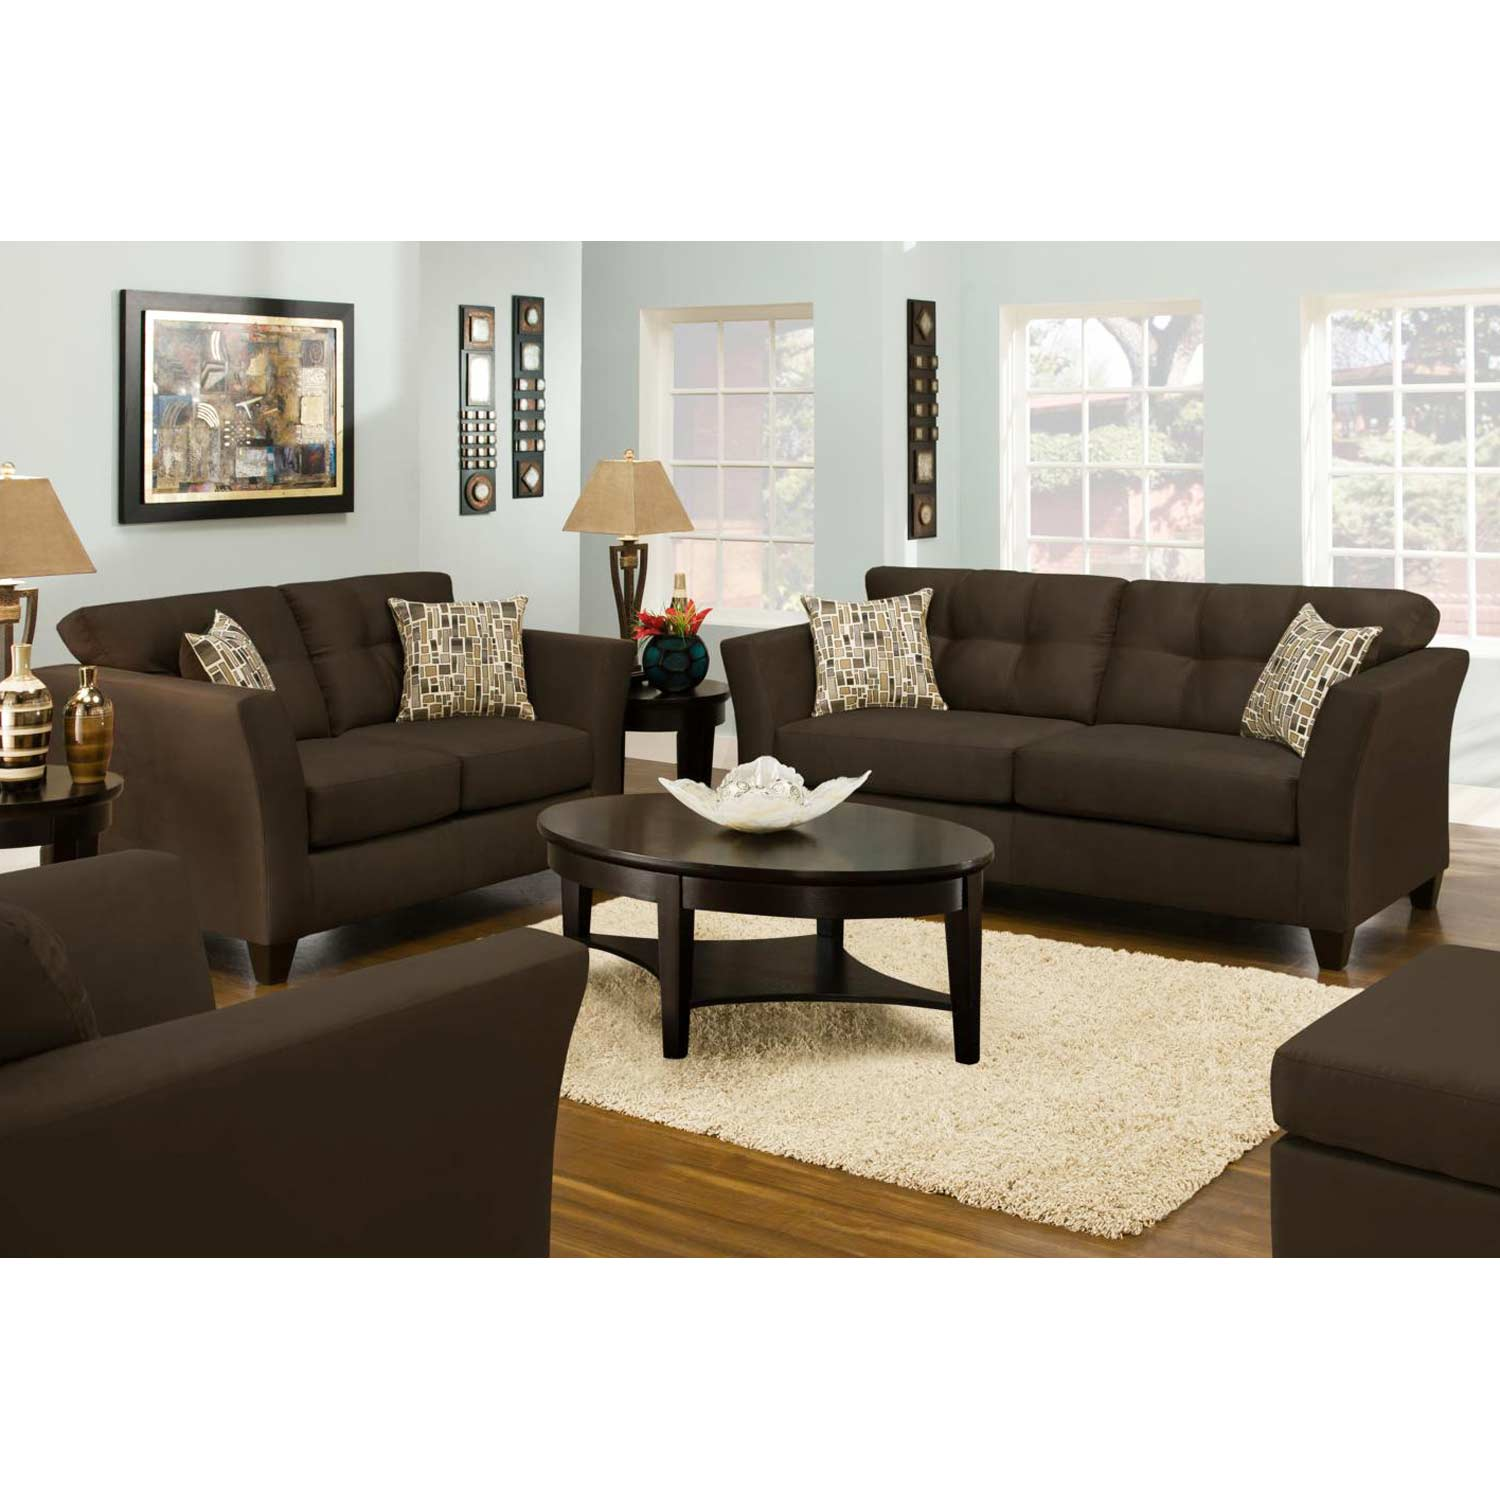 Del Mar Tufted Loveseat - Beijing Chocolate Fabric - CHF-184502-8019